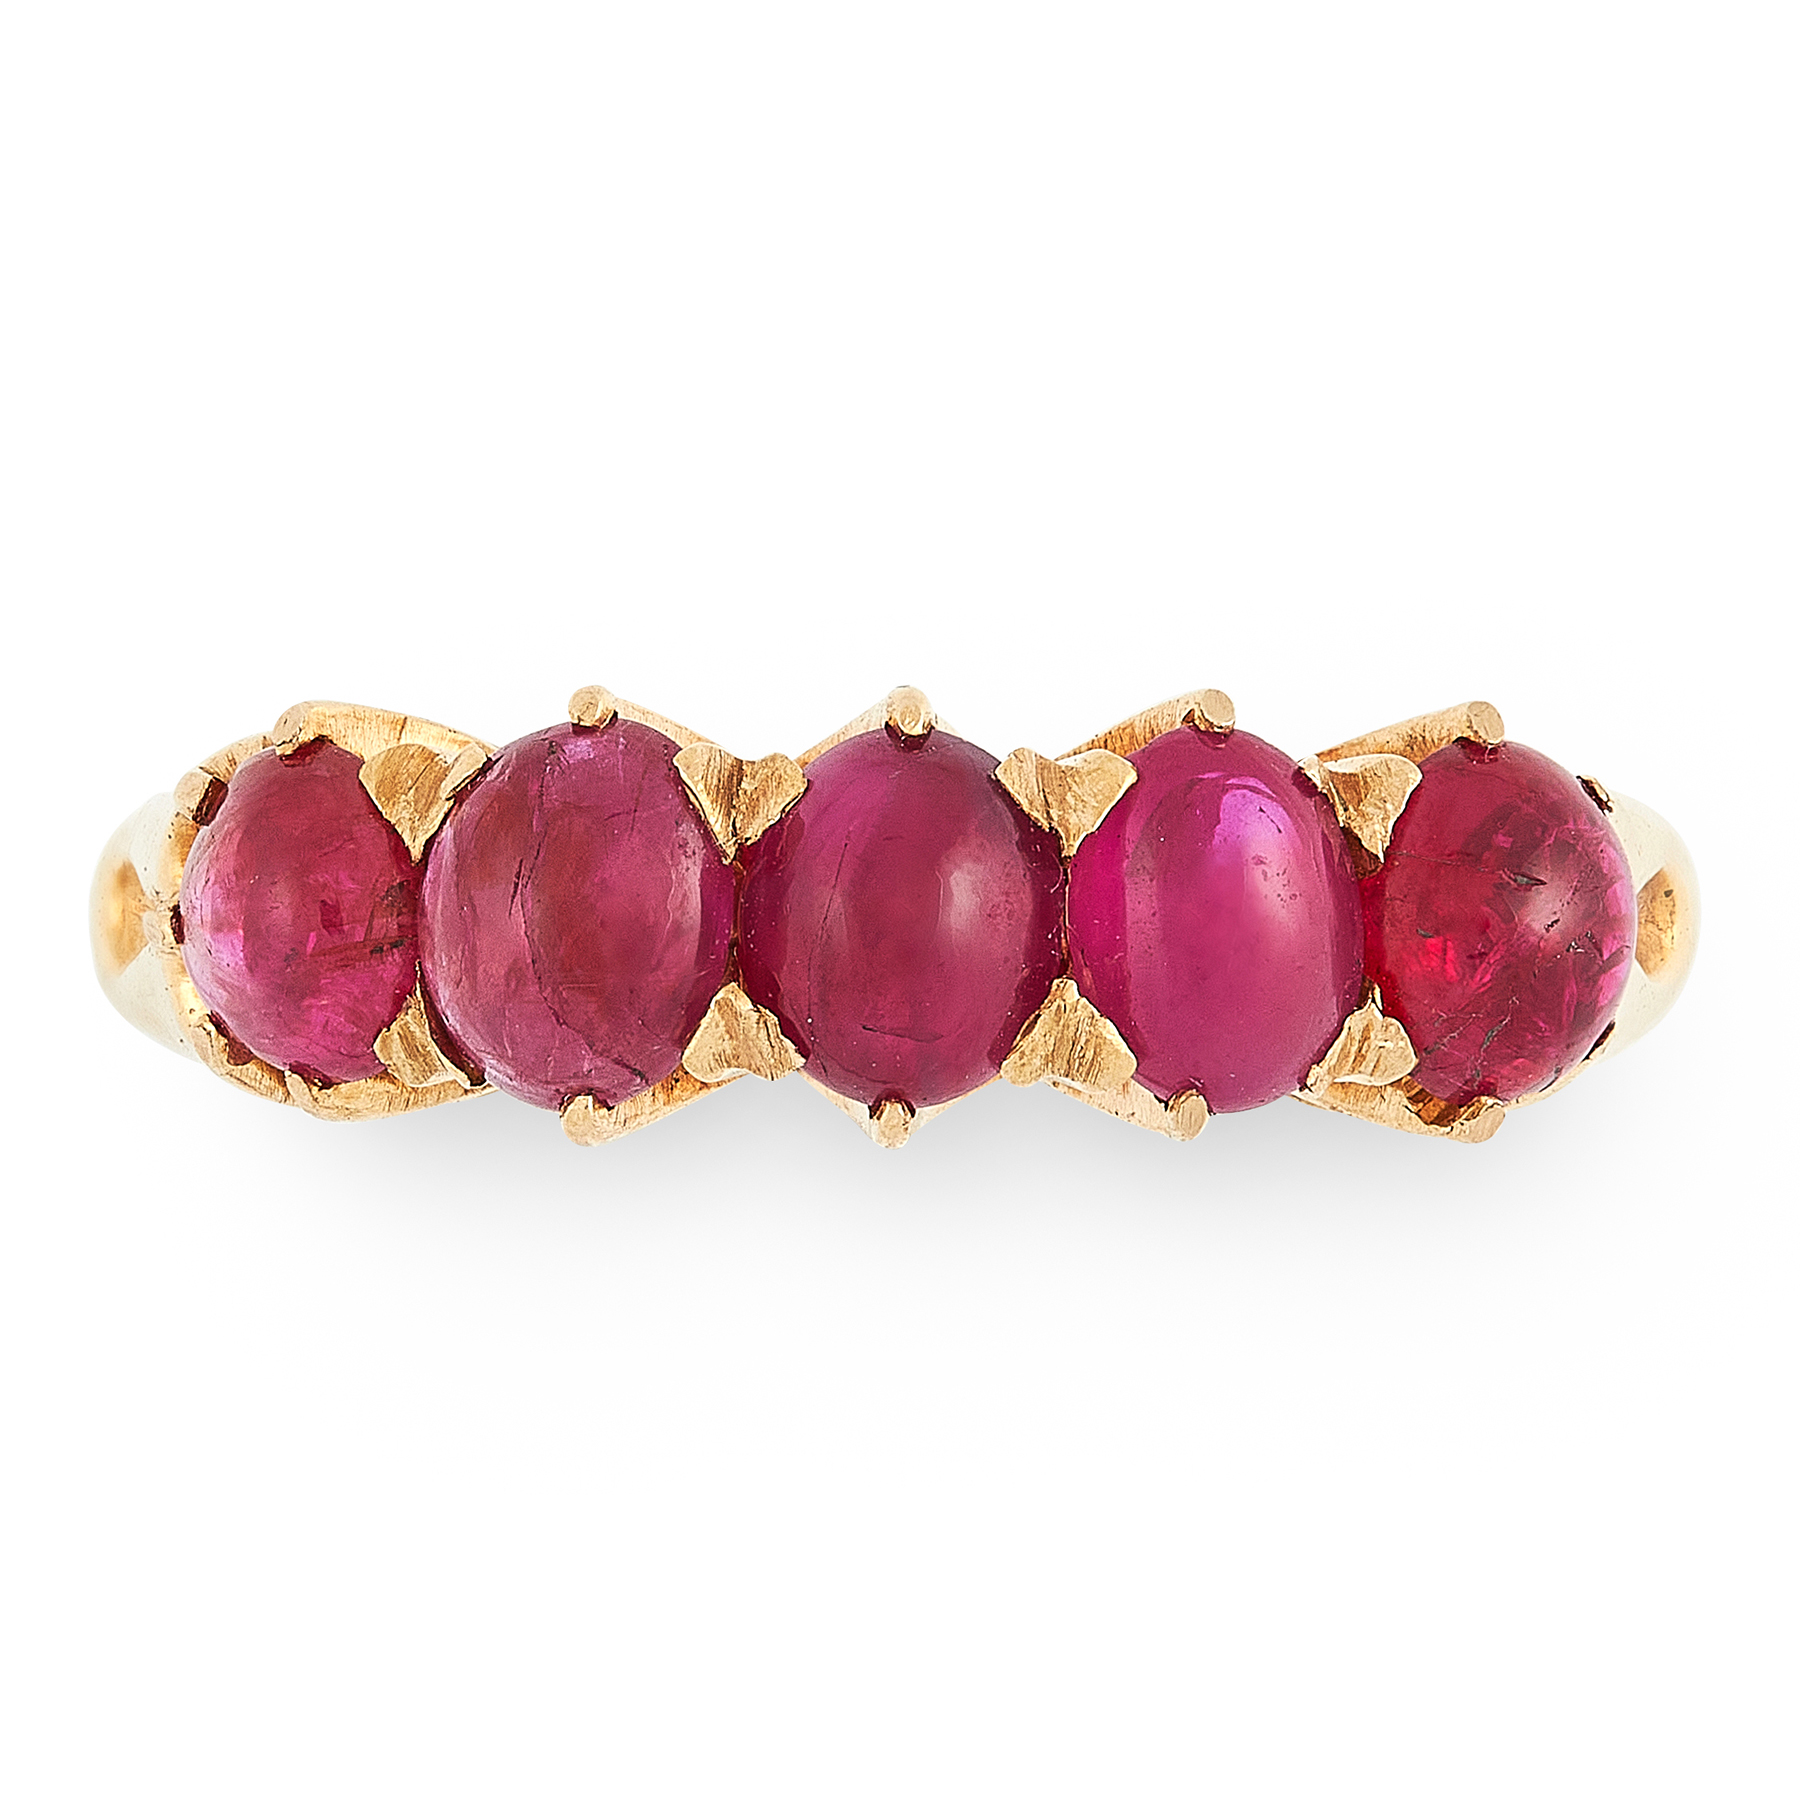 A RUBY DRESS RING in high carat yellow gold, set with a row of five graduated oval cabochon rubies